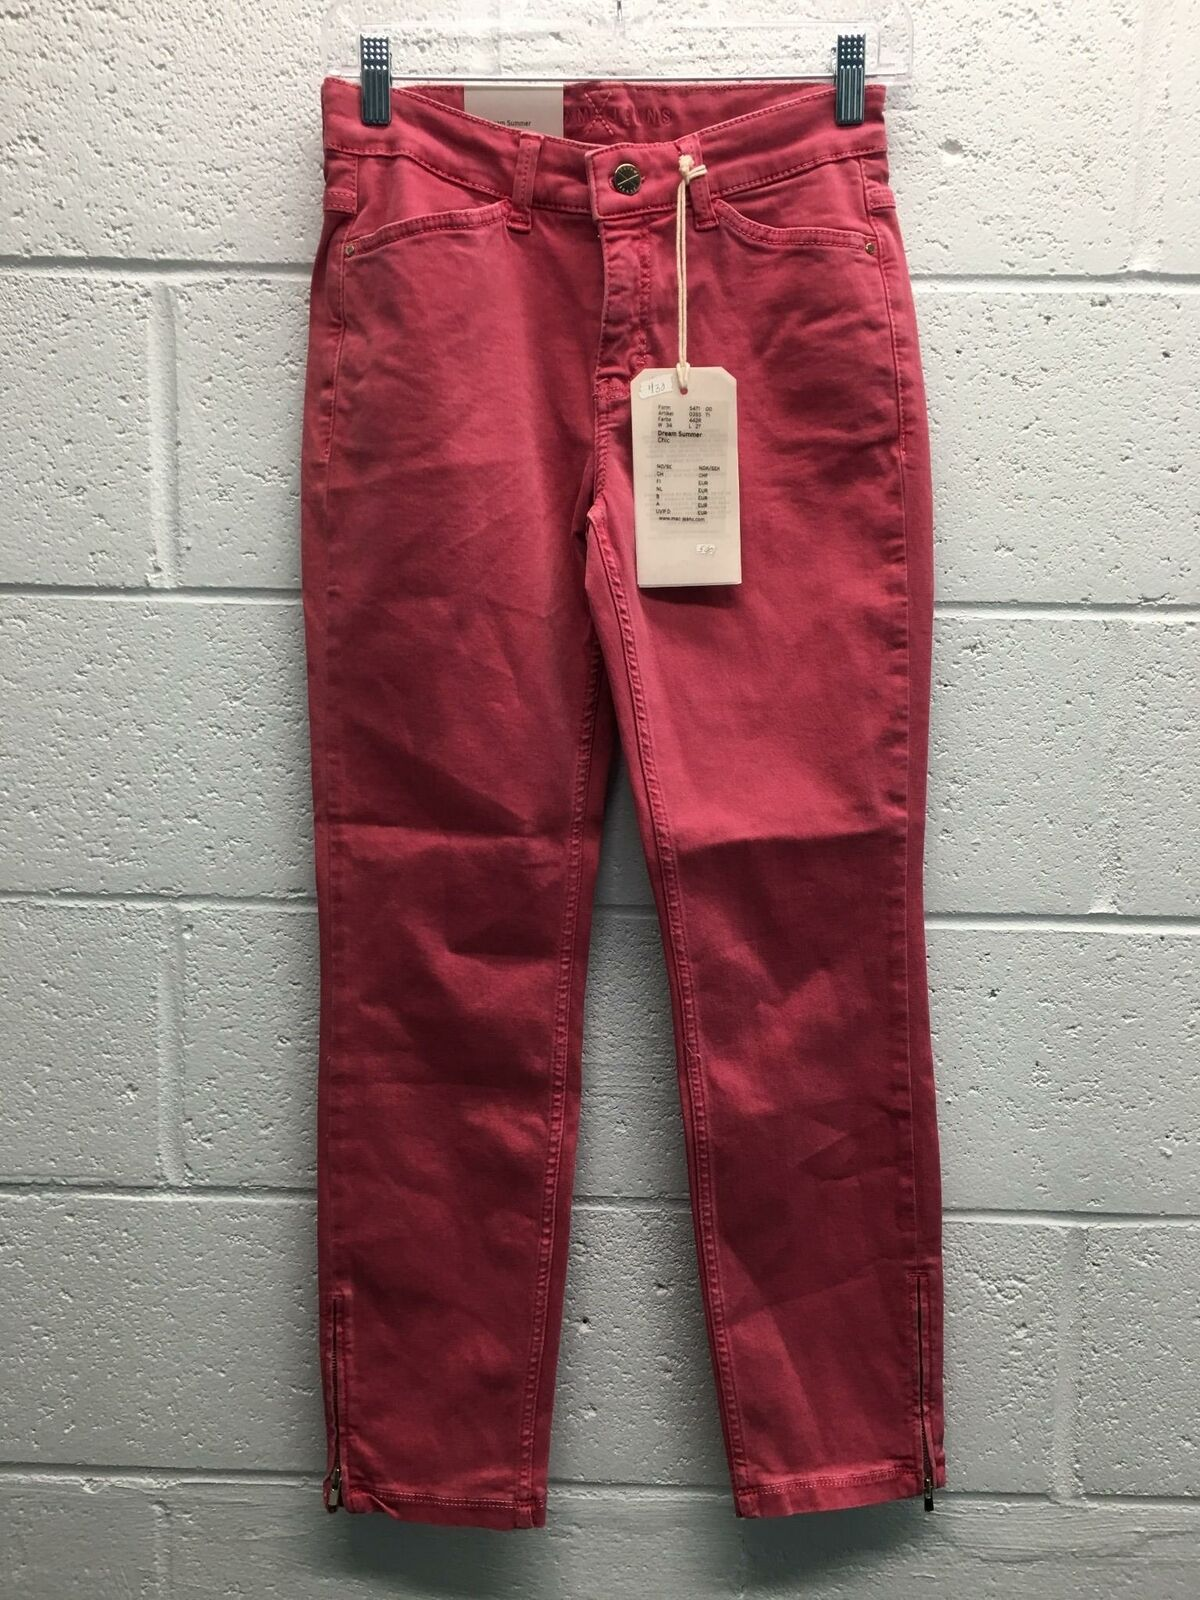 Women's Mac Jeans Dream Summer Jeans Size 34x27 HotPink Cotton Polyester Spandex